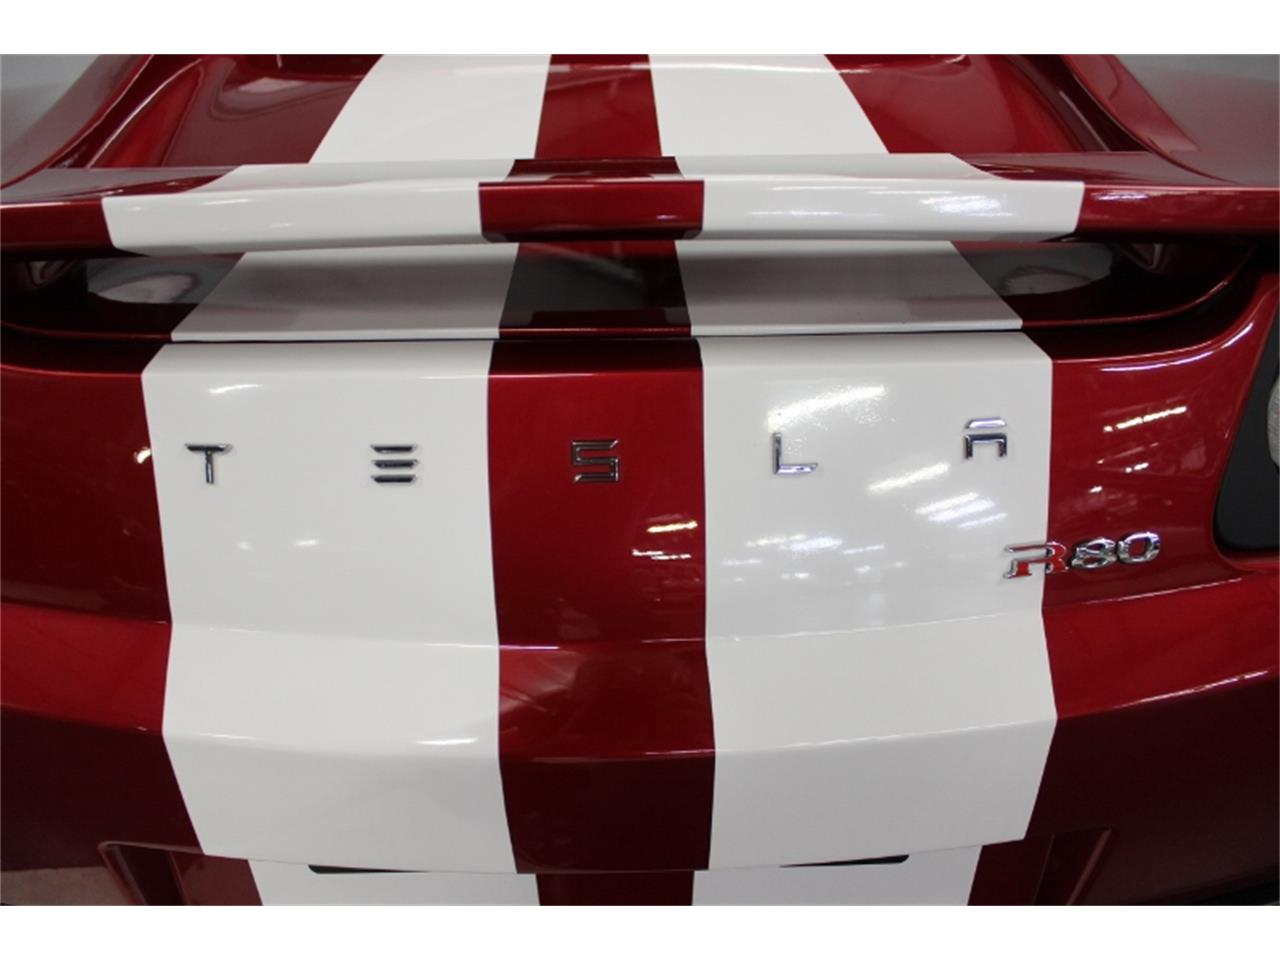 Large Picture of '11 Tesla Roadster located in North Carolina - $70,000.00 Offered by East Coast Classic Cars - PUDM